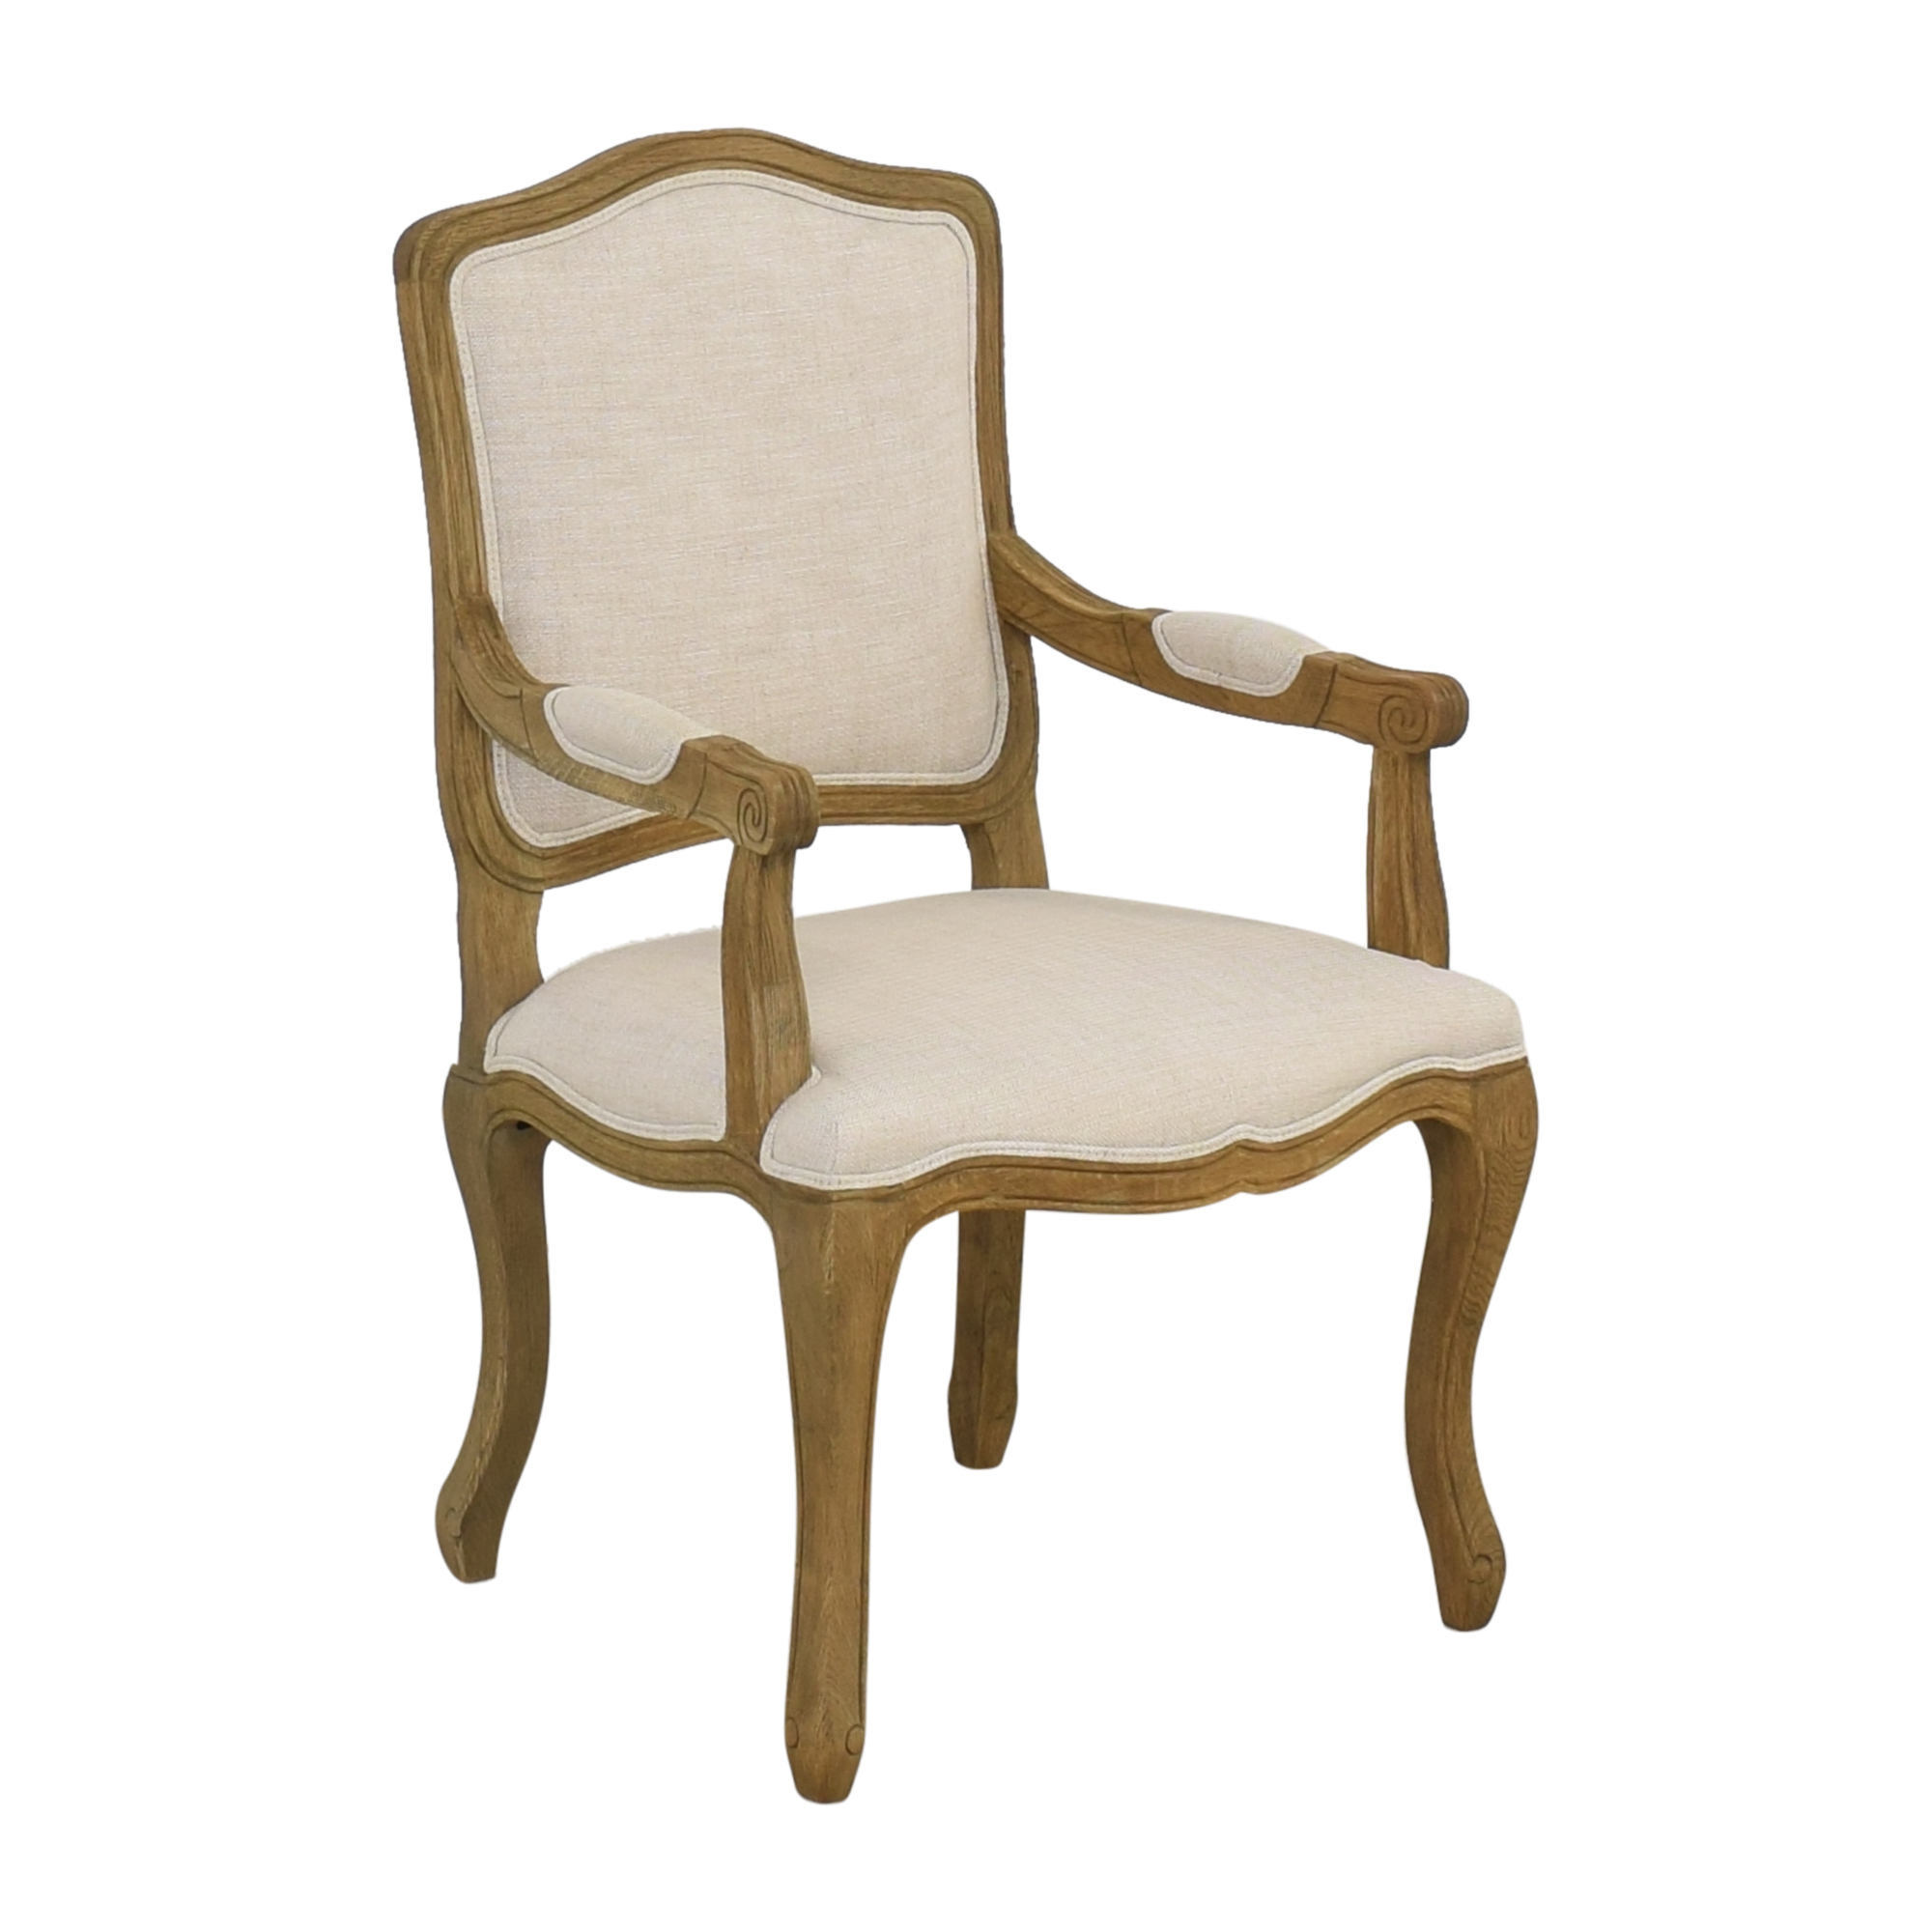 Restoration Hardware Restoration Hardware Vintage French Camelback Fabric Armchair coupon